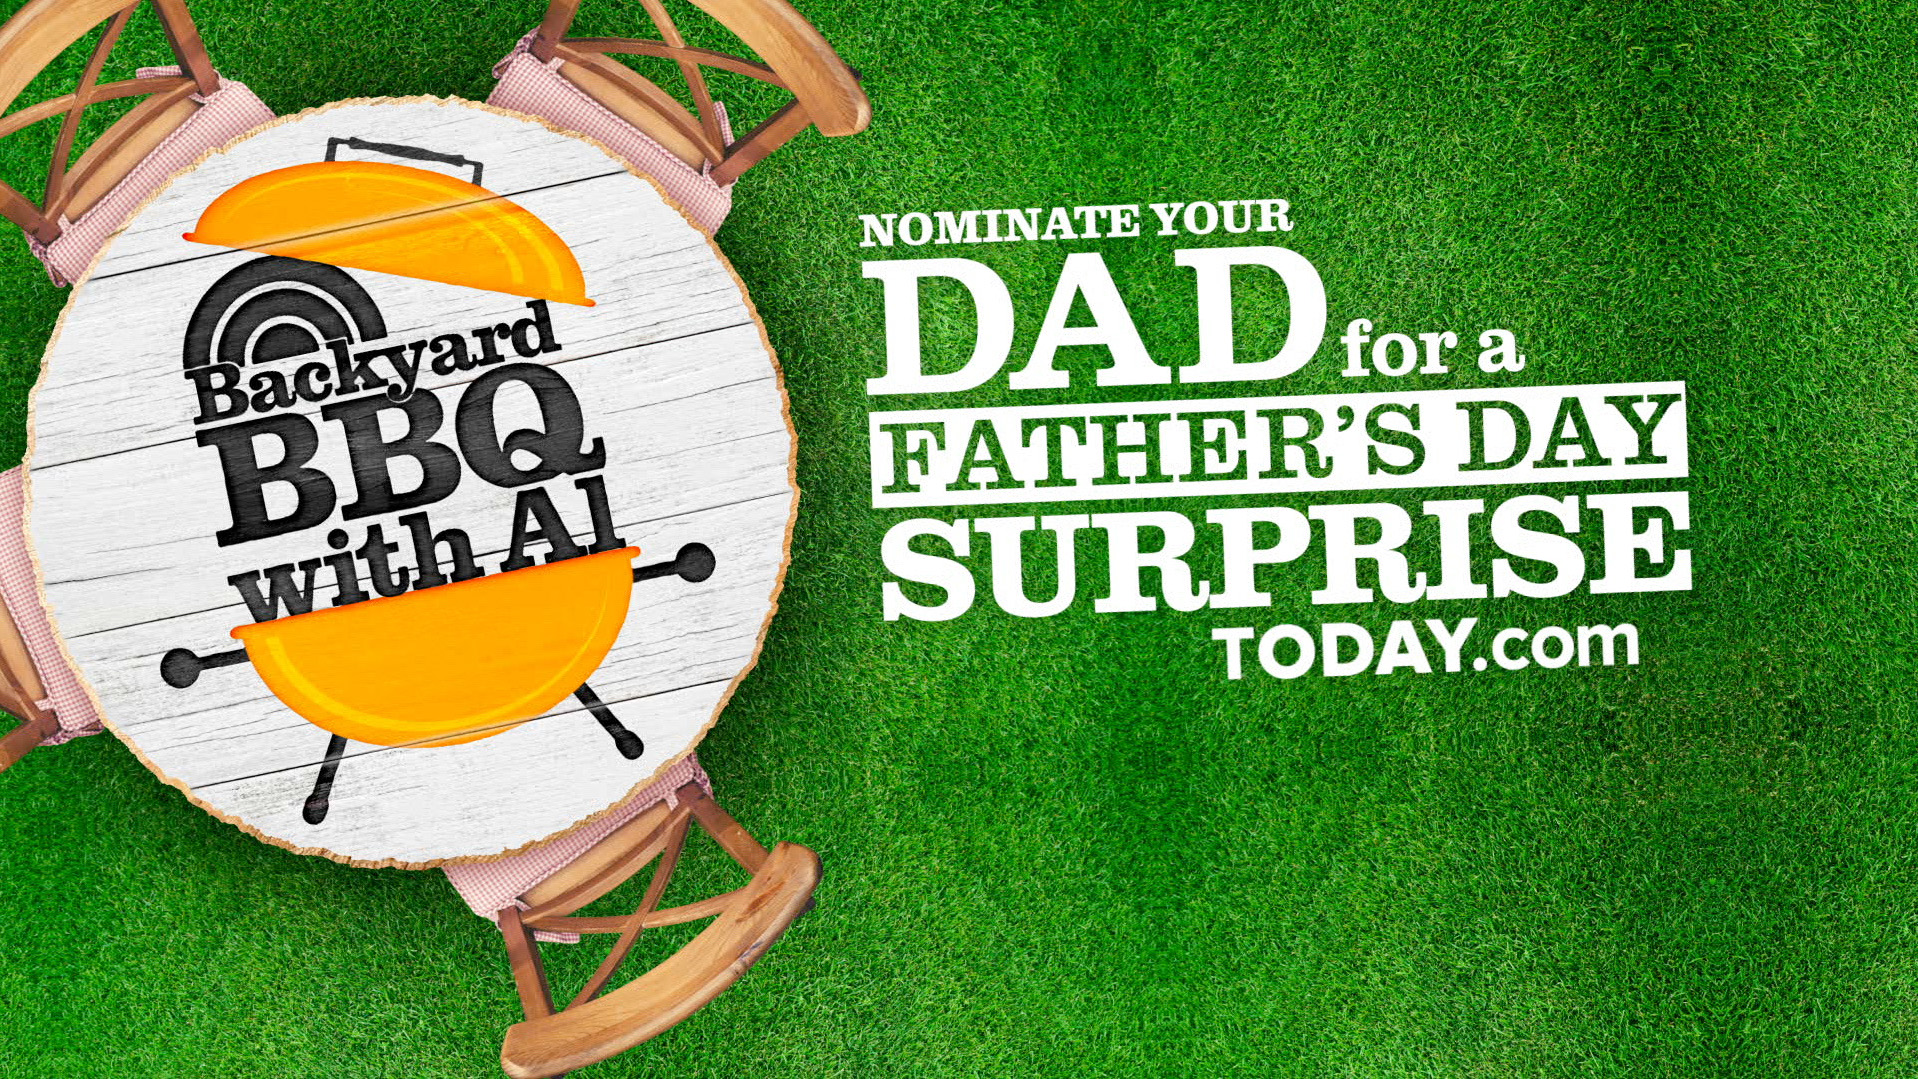 backyard barbecue with al nominate your dad for a great father u0027s